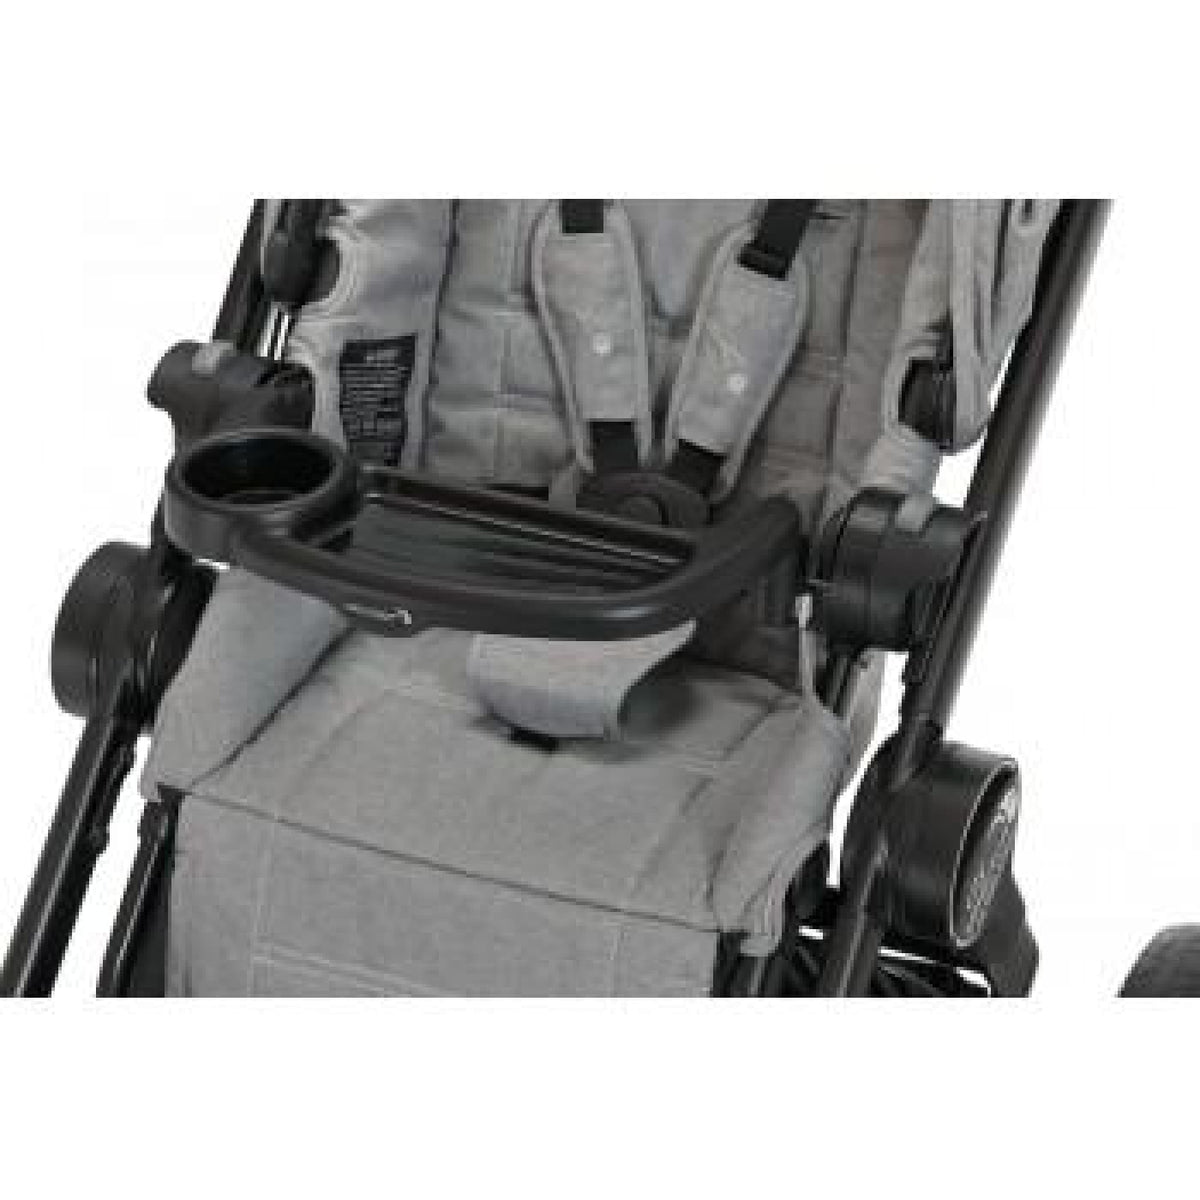 Baby Jogger City Select Lux Child Tray - PRAMS & STROLLERS - TRAYS/BELLY BARS